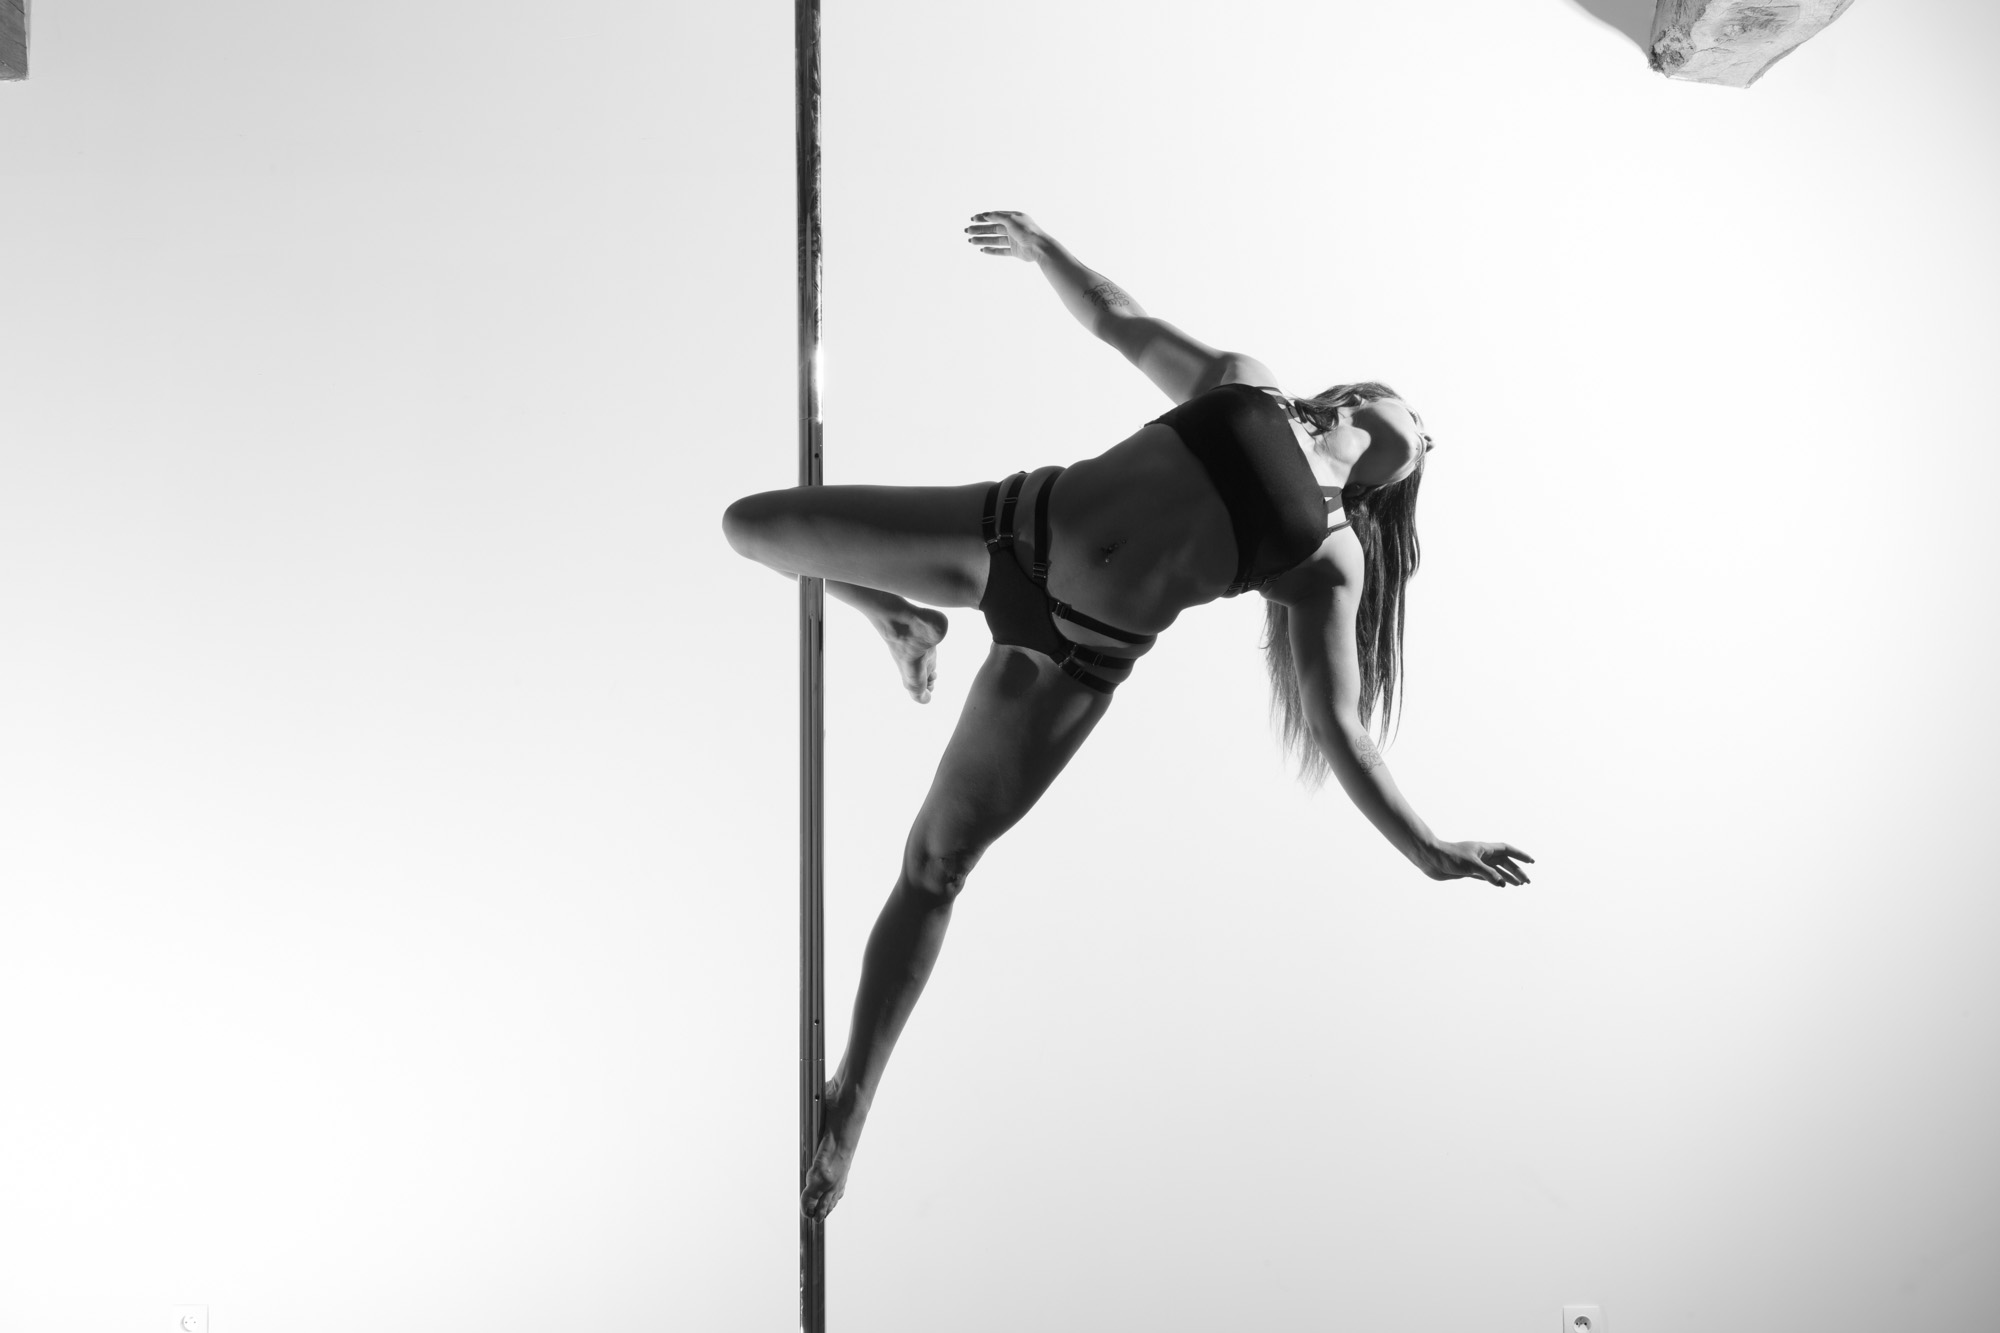 Morgane pole danse-898-50